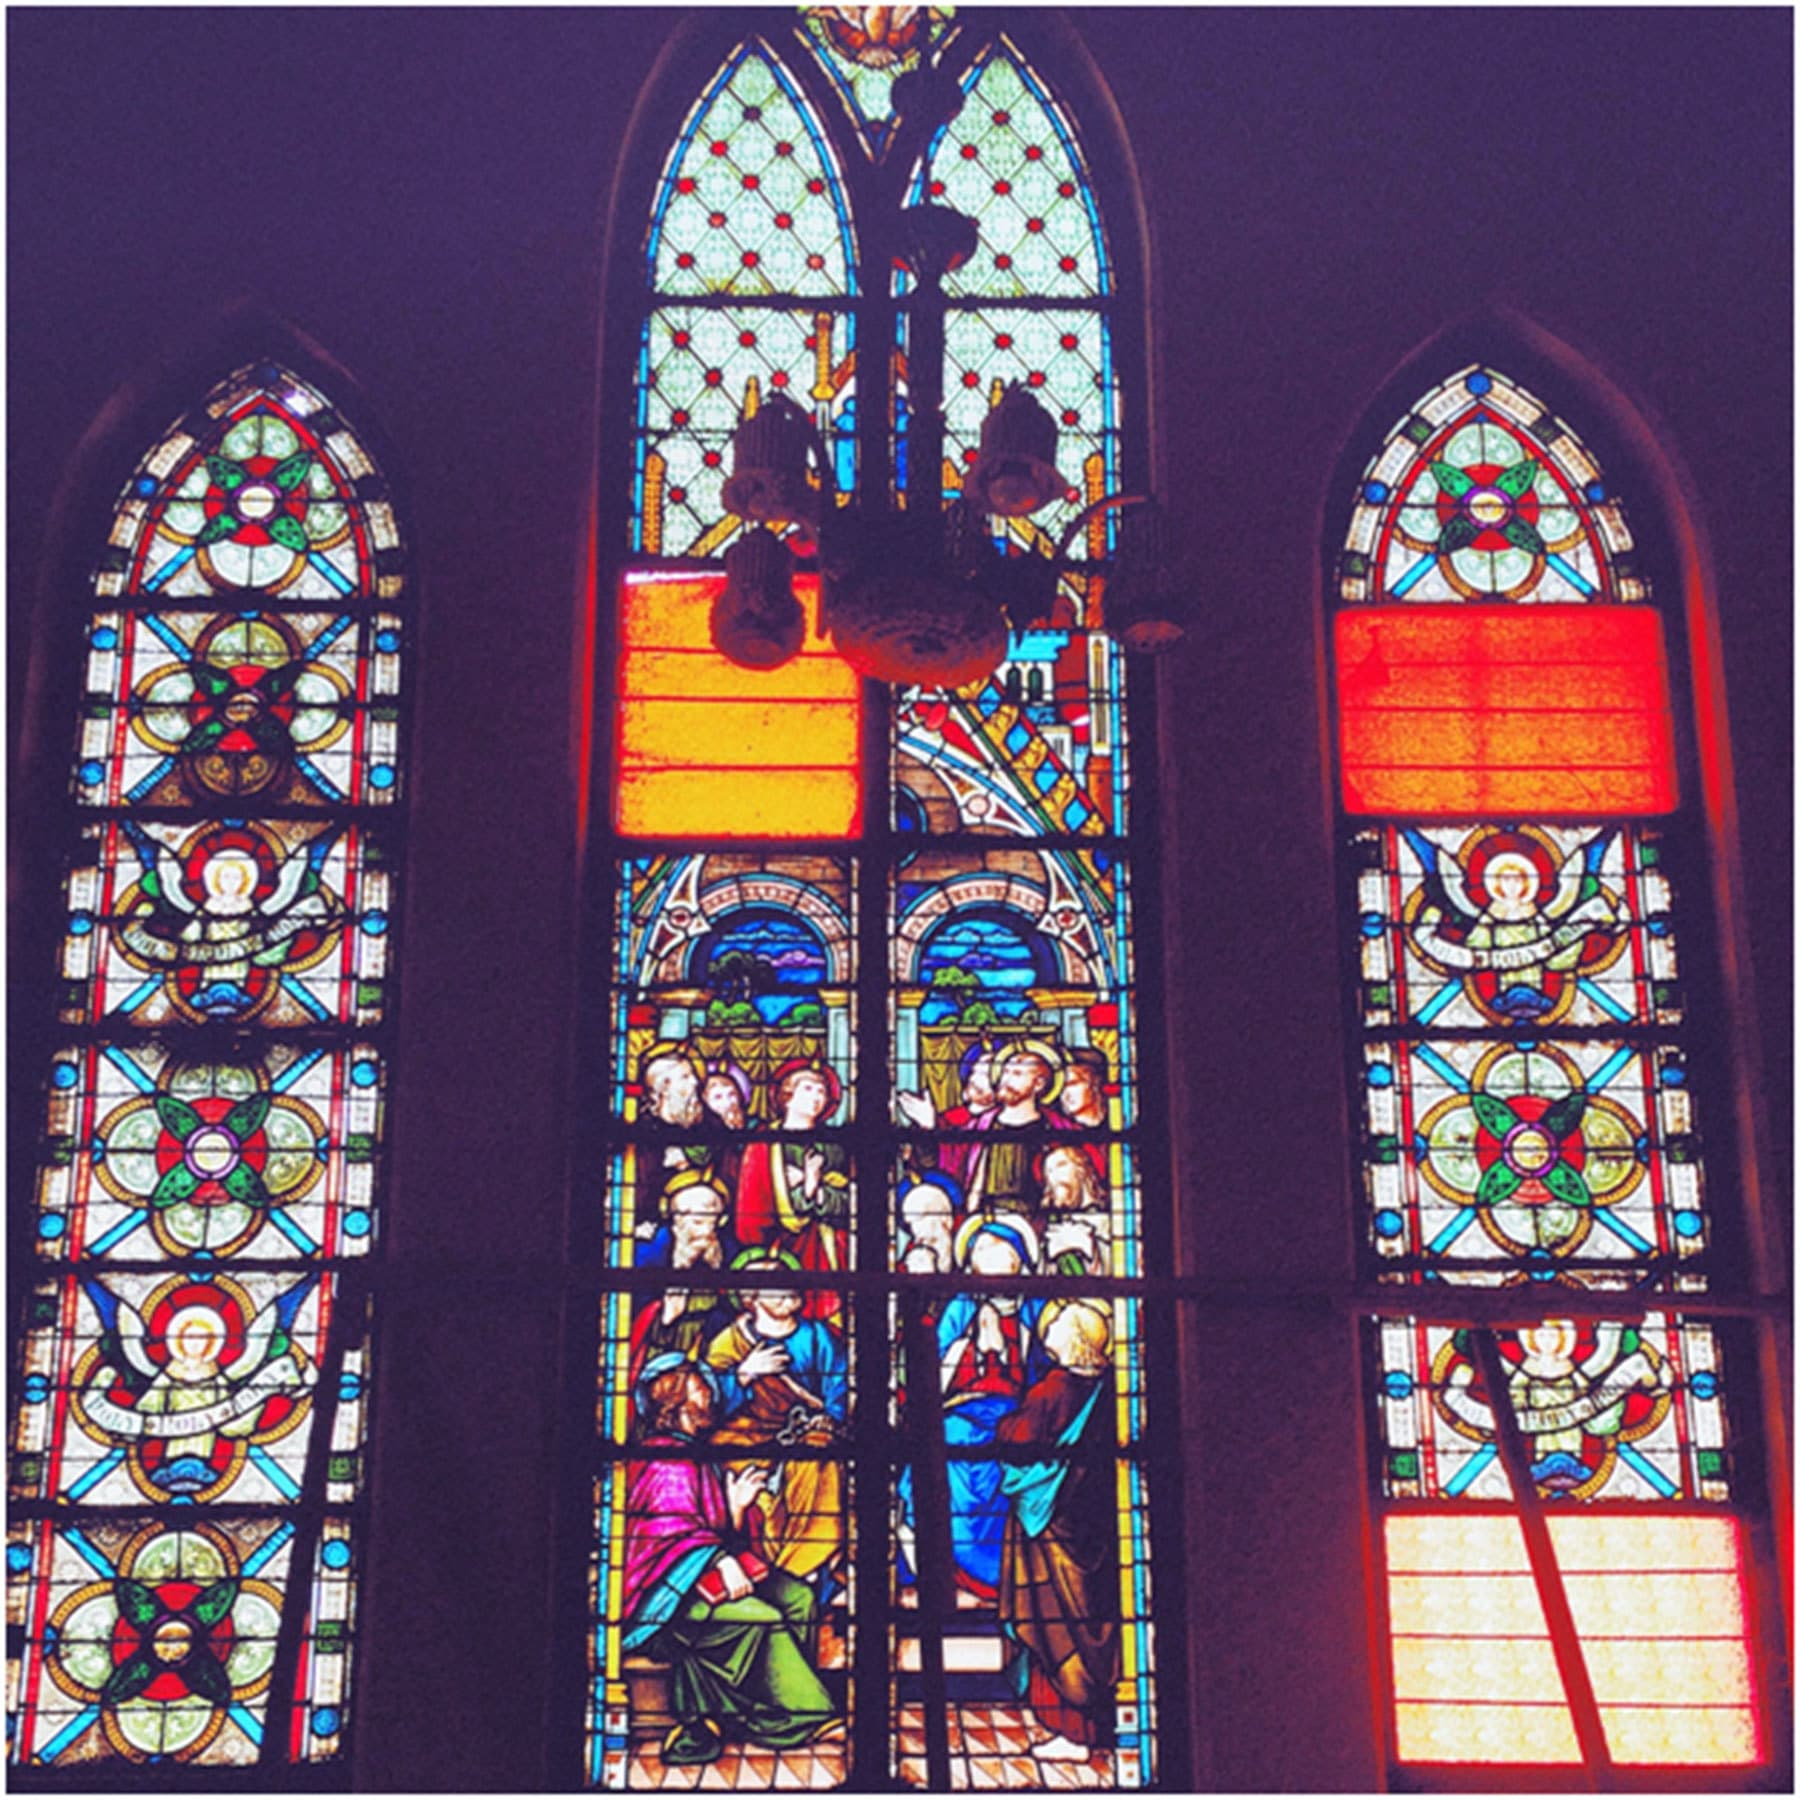 One of the beautiful hand stained glass windows of the Church.